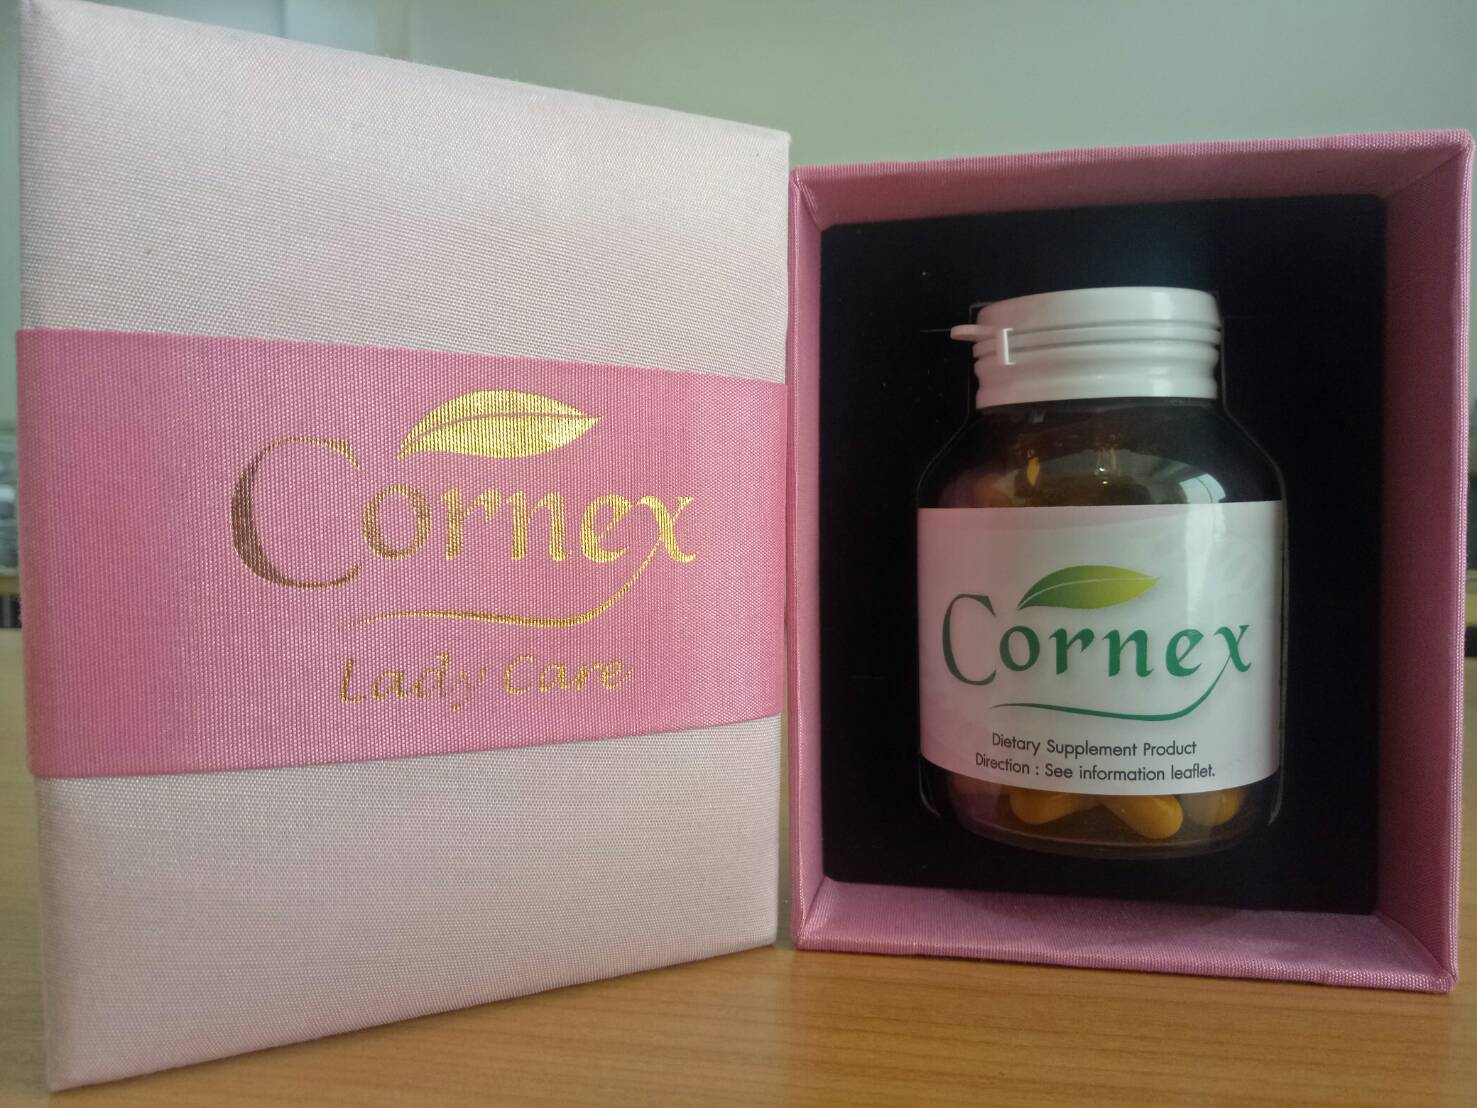 Hair Growth Product for Women